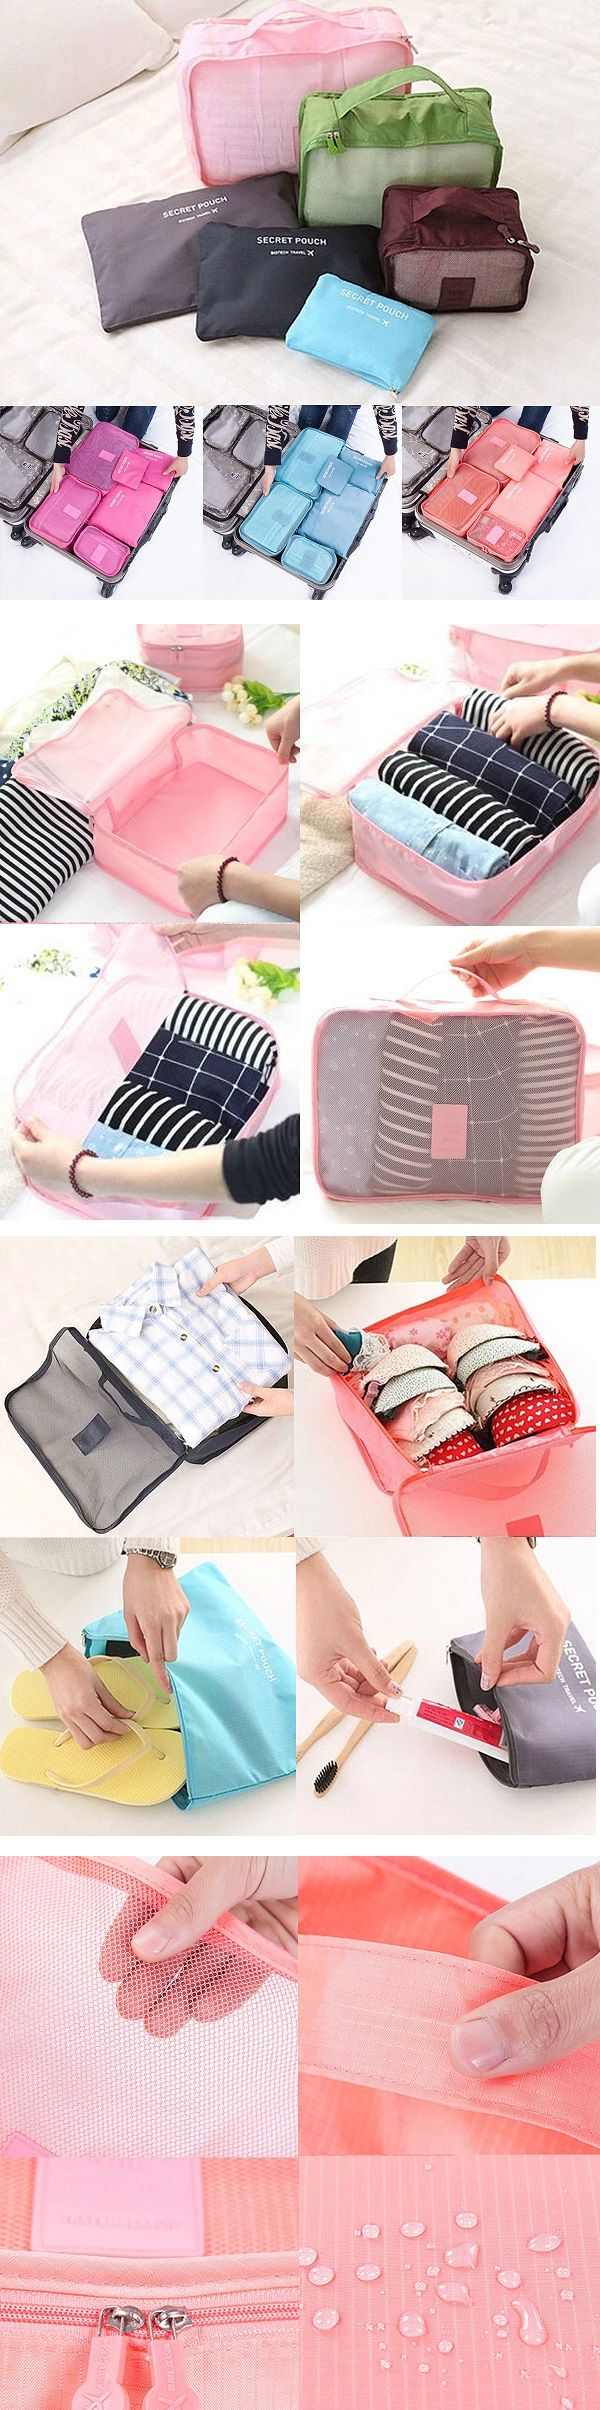 US$9.49  6Pcs Waterproof Travel Storage Bags Packing Cube Clothes Pouch Luggage Organizer